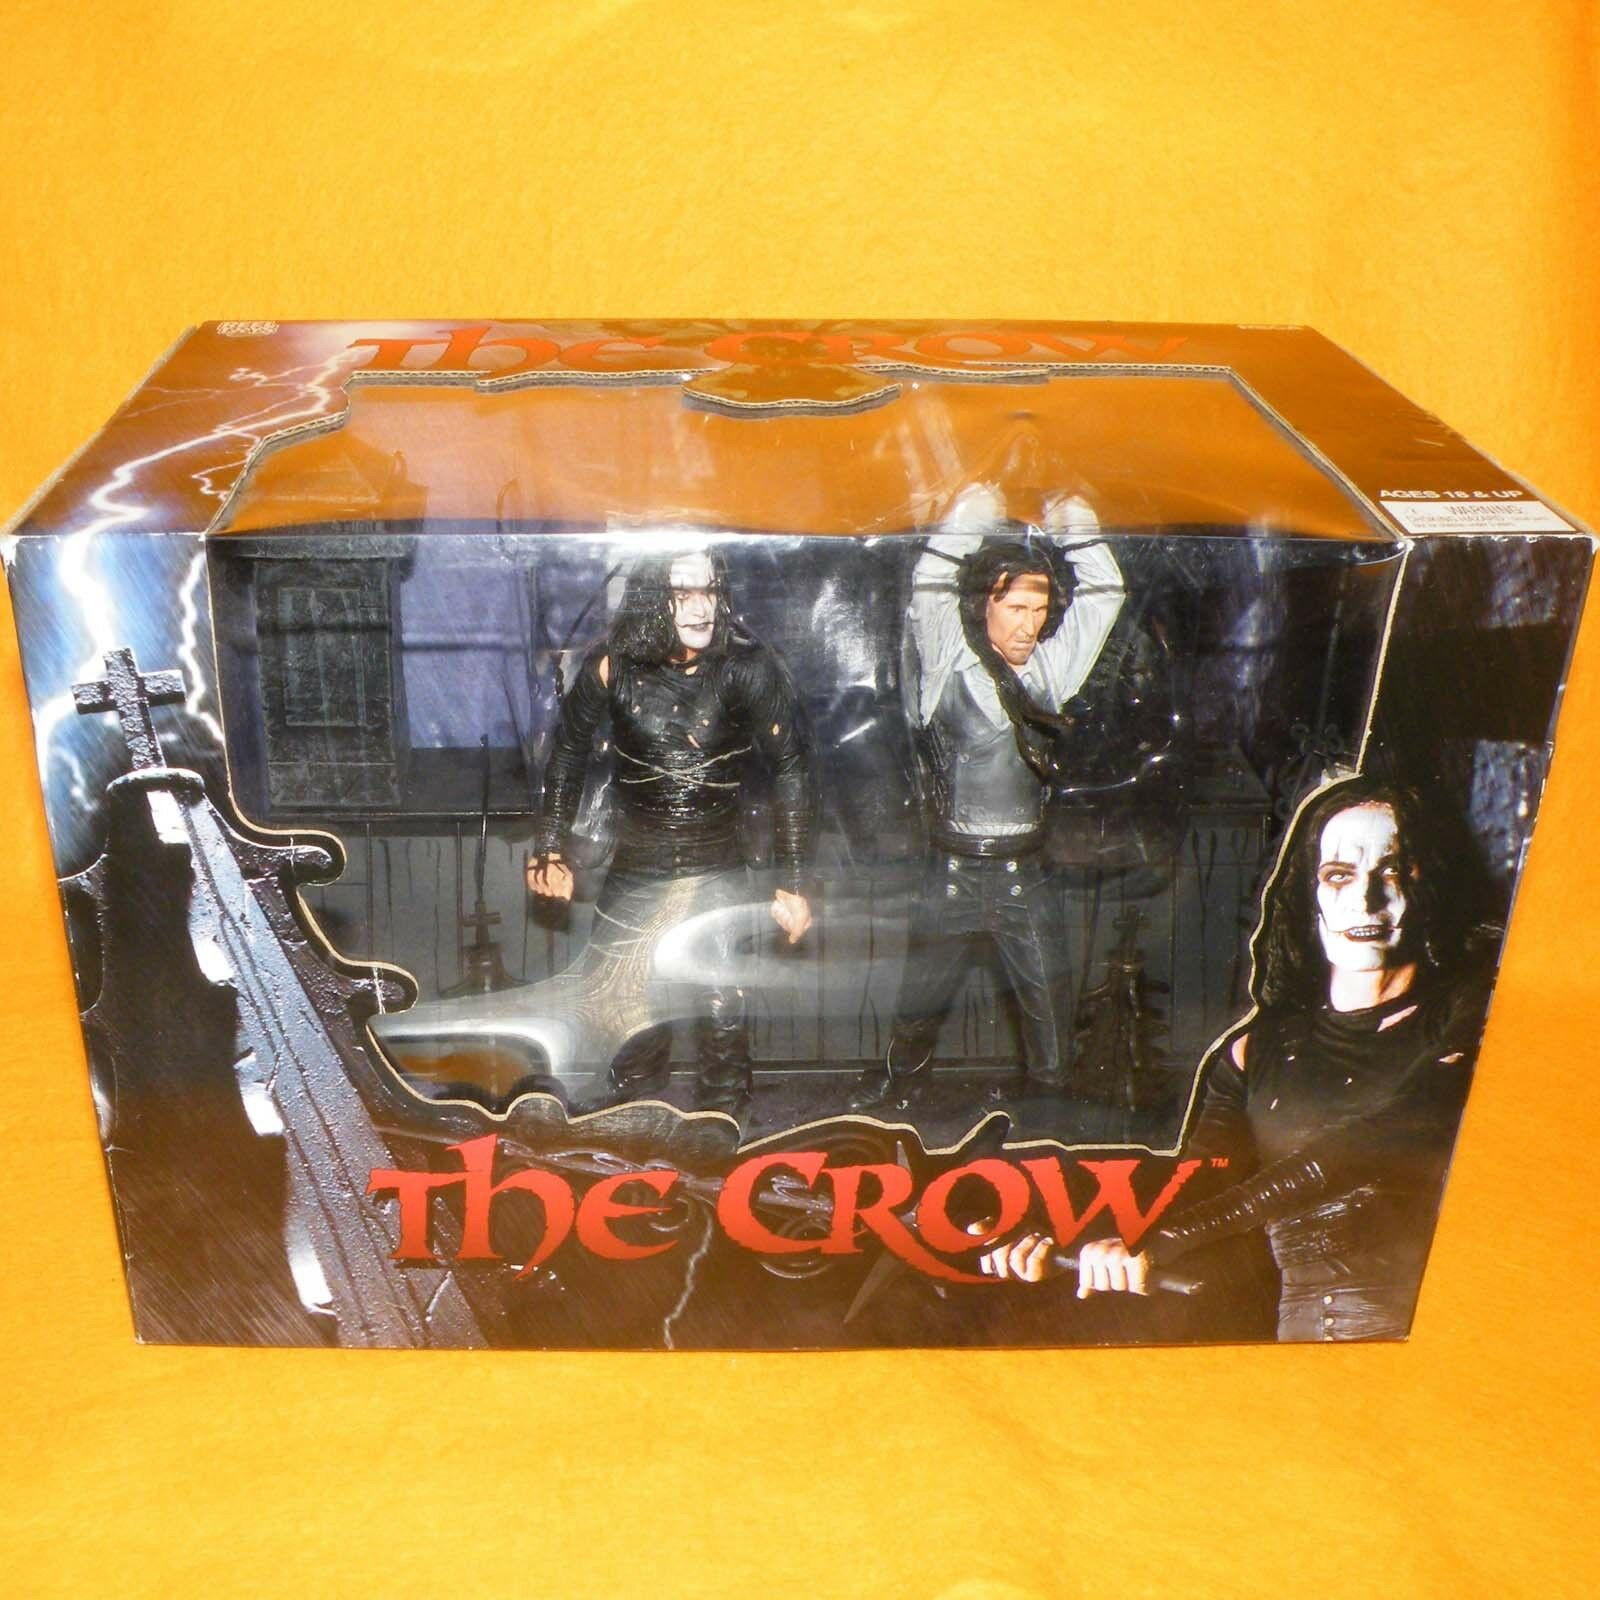 2005 NECA reelJuguetes el Cuervo Eric Draven Vs Top Dollar Figura en caja Set SEALED